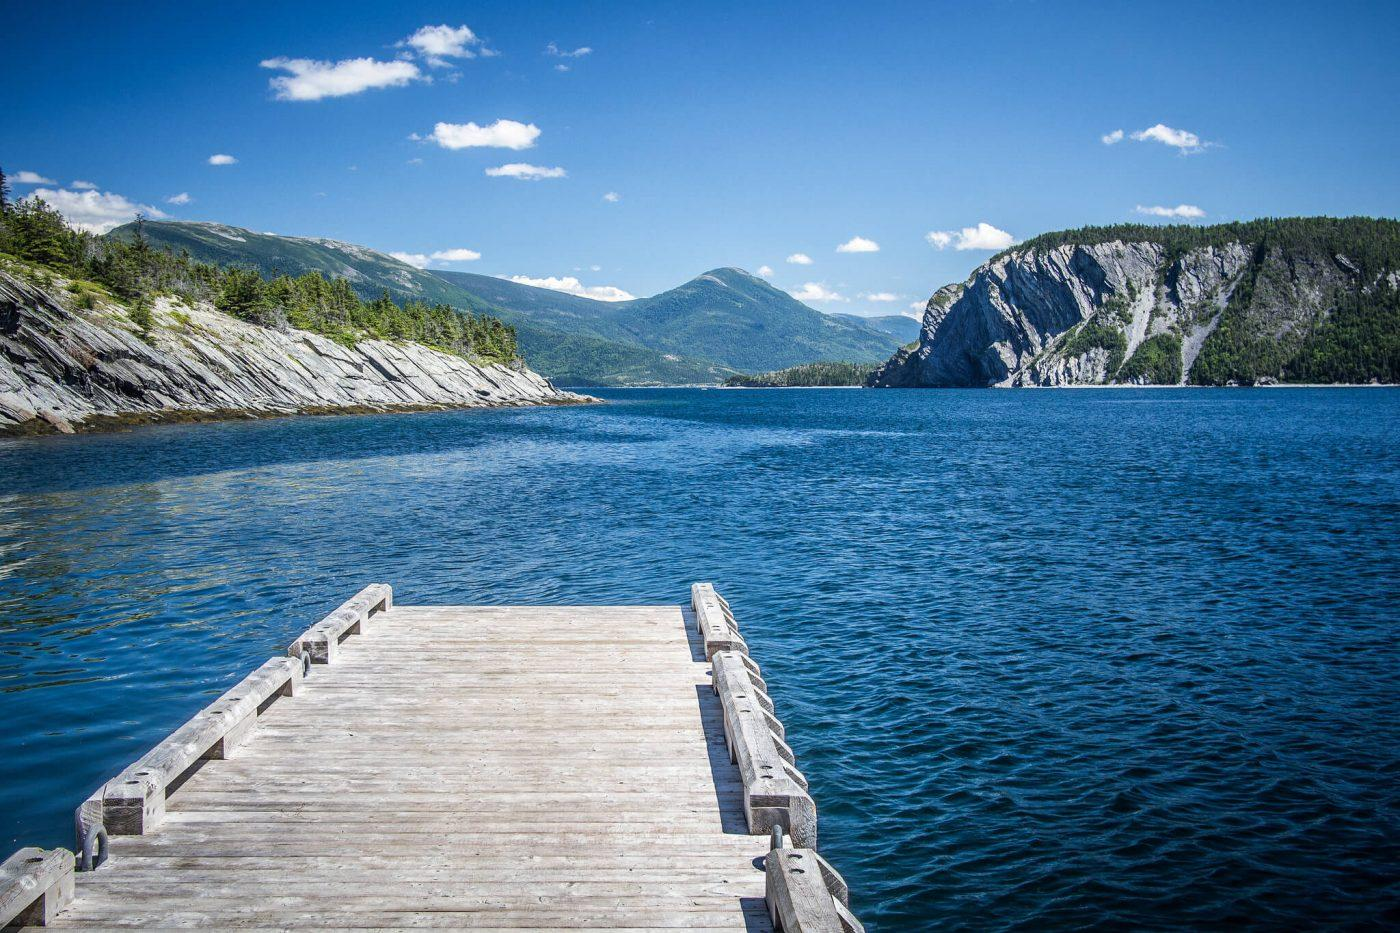 On a pier in Norris Point, by Bonne Bay - Gros Morne National Park, Newfoundland.